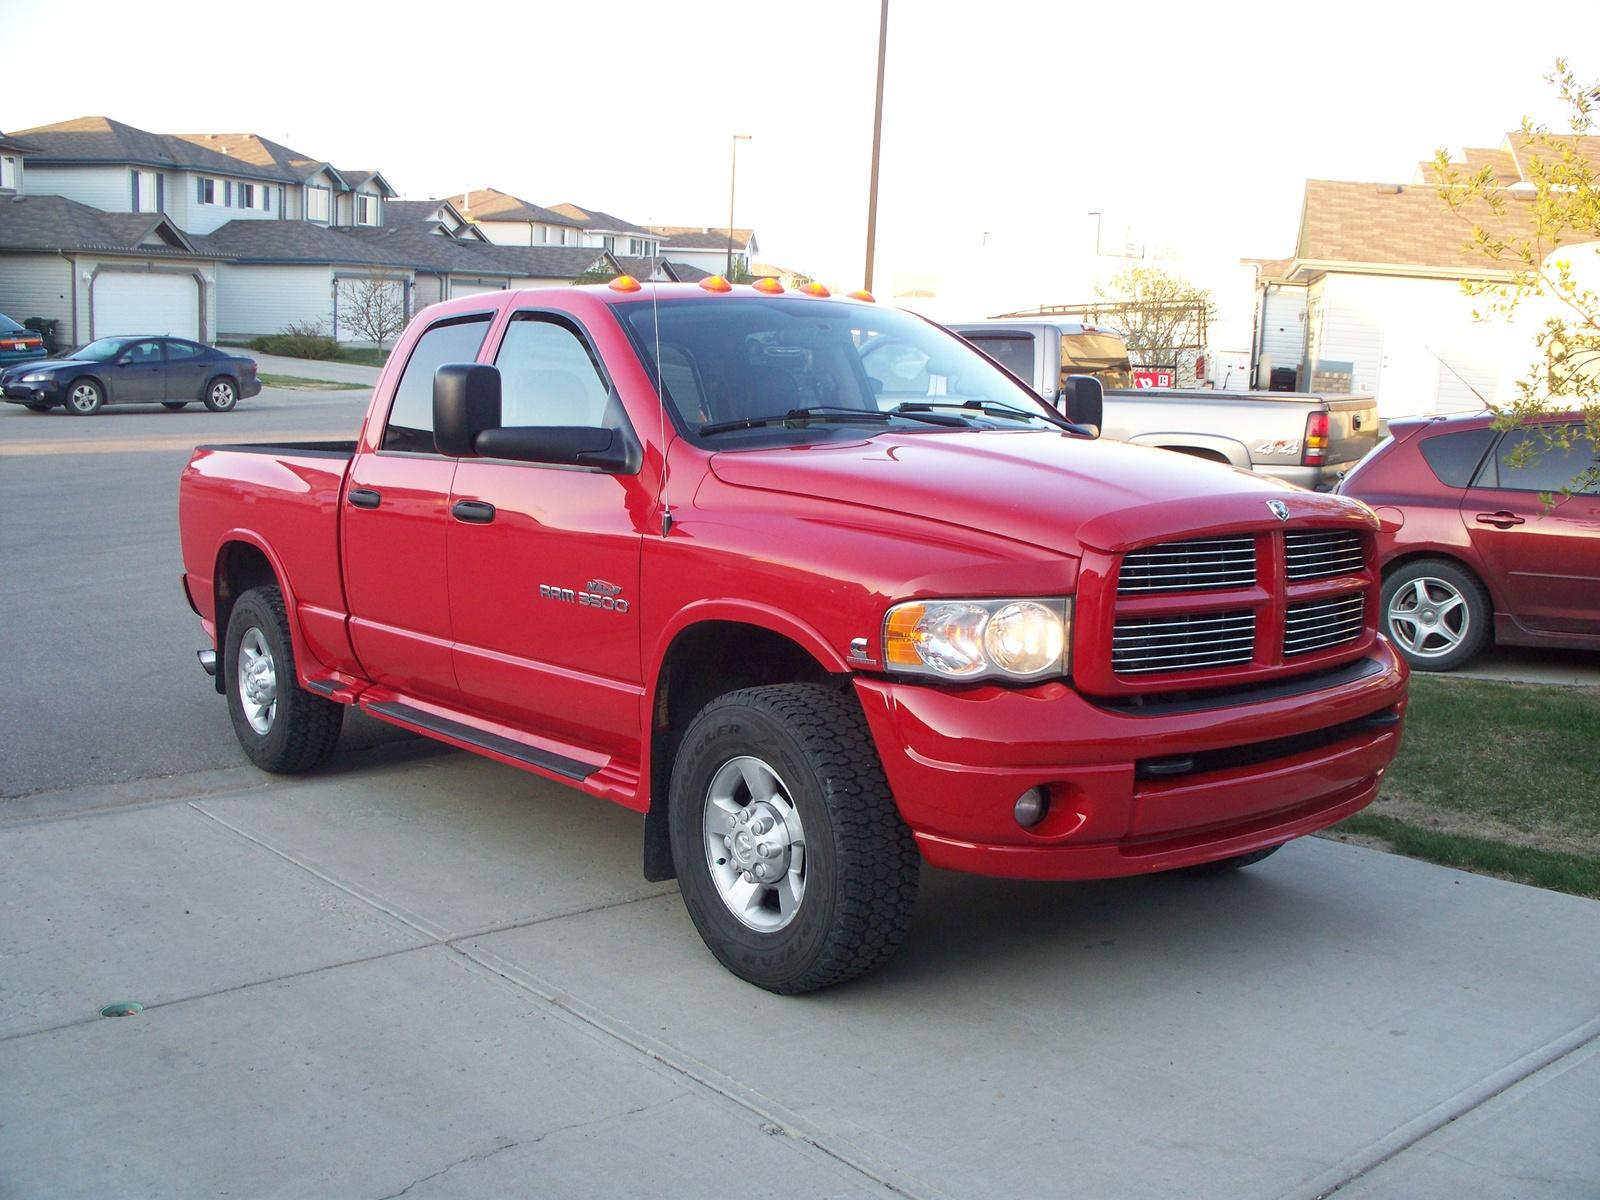 home ram trucks driven - photo #35